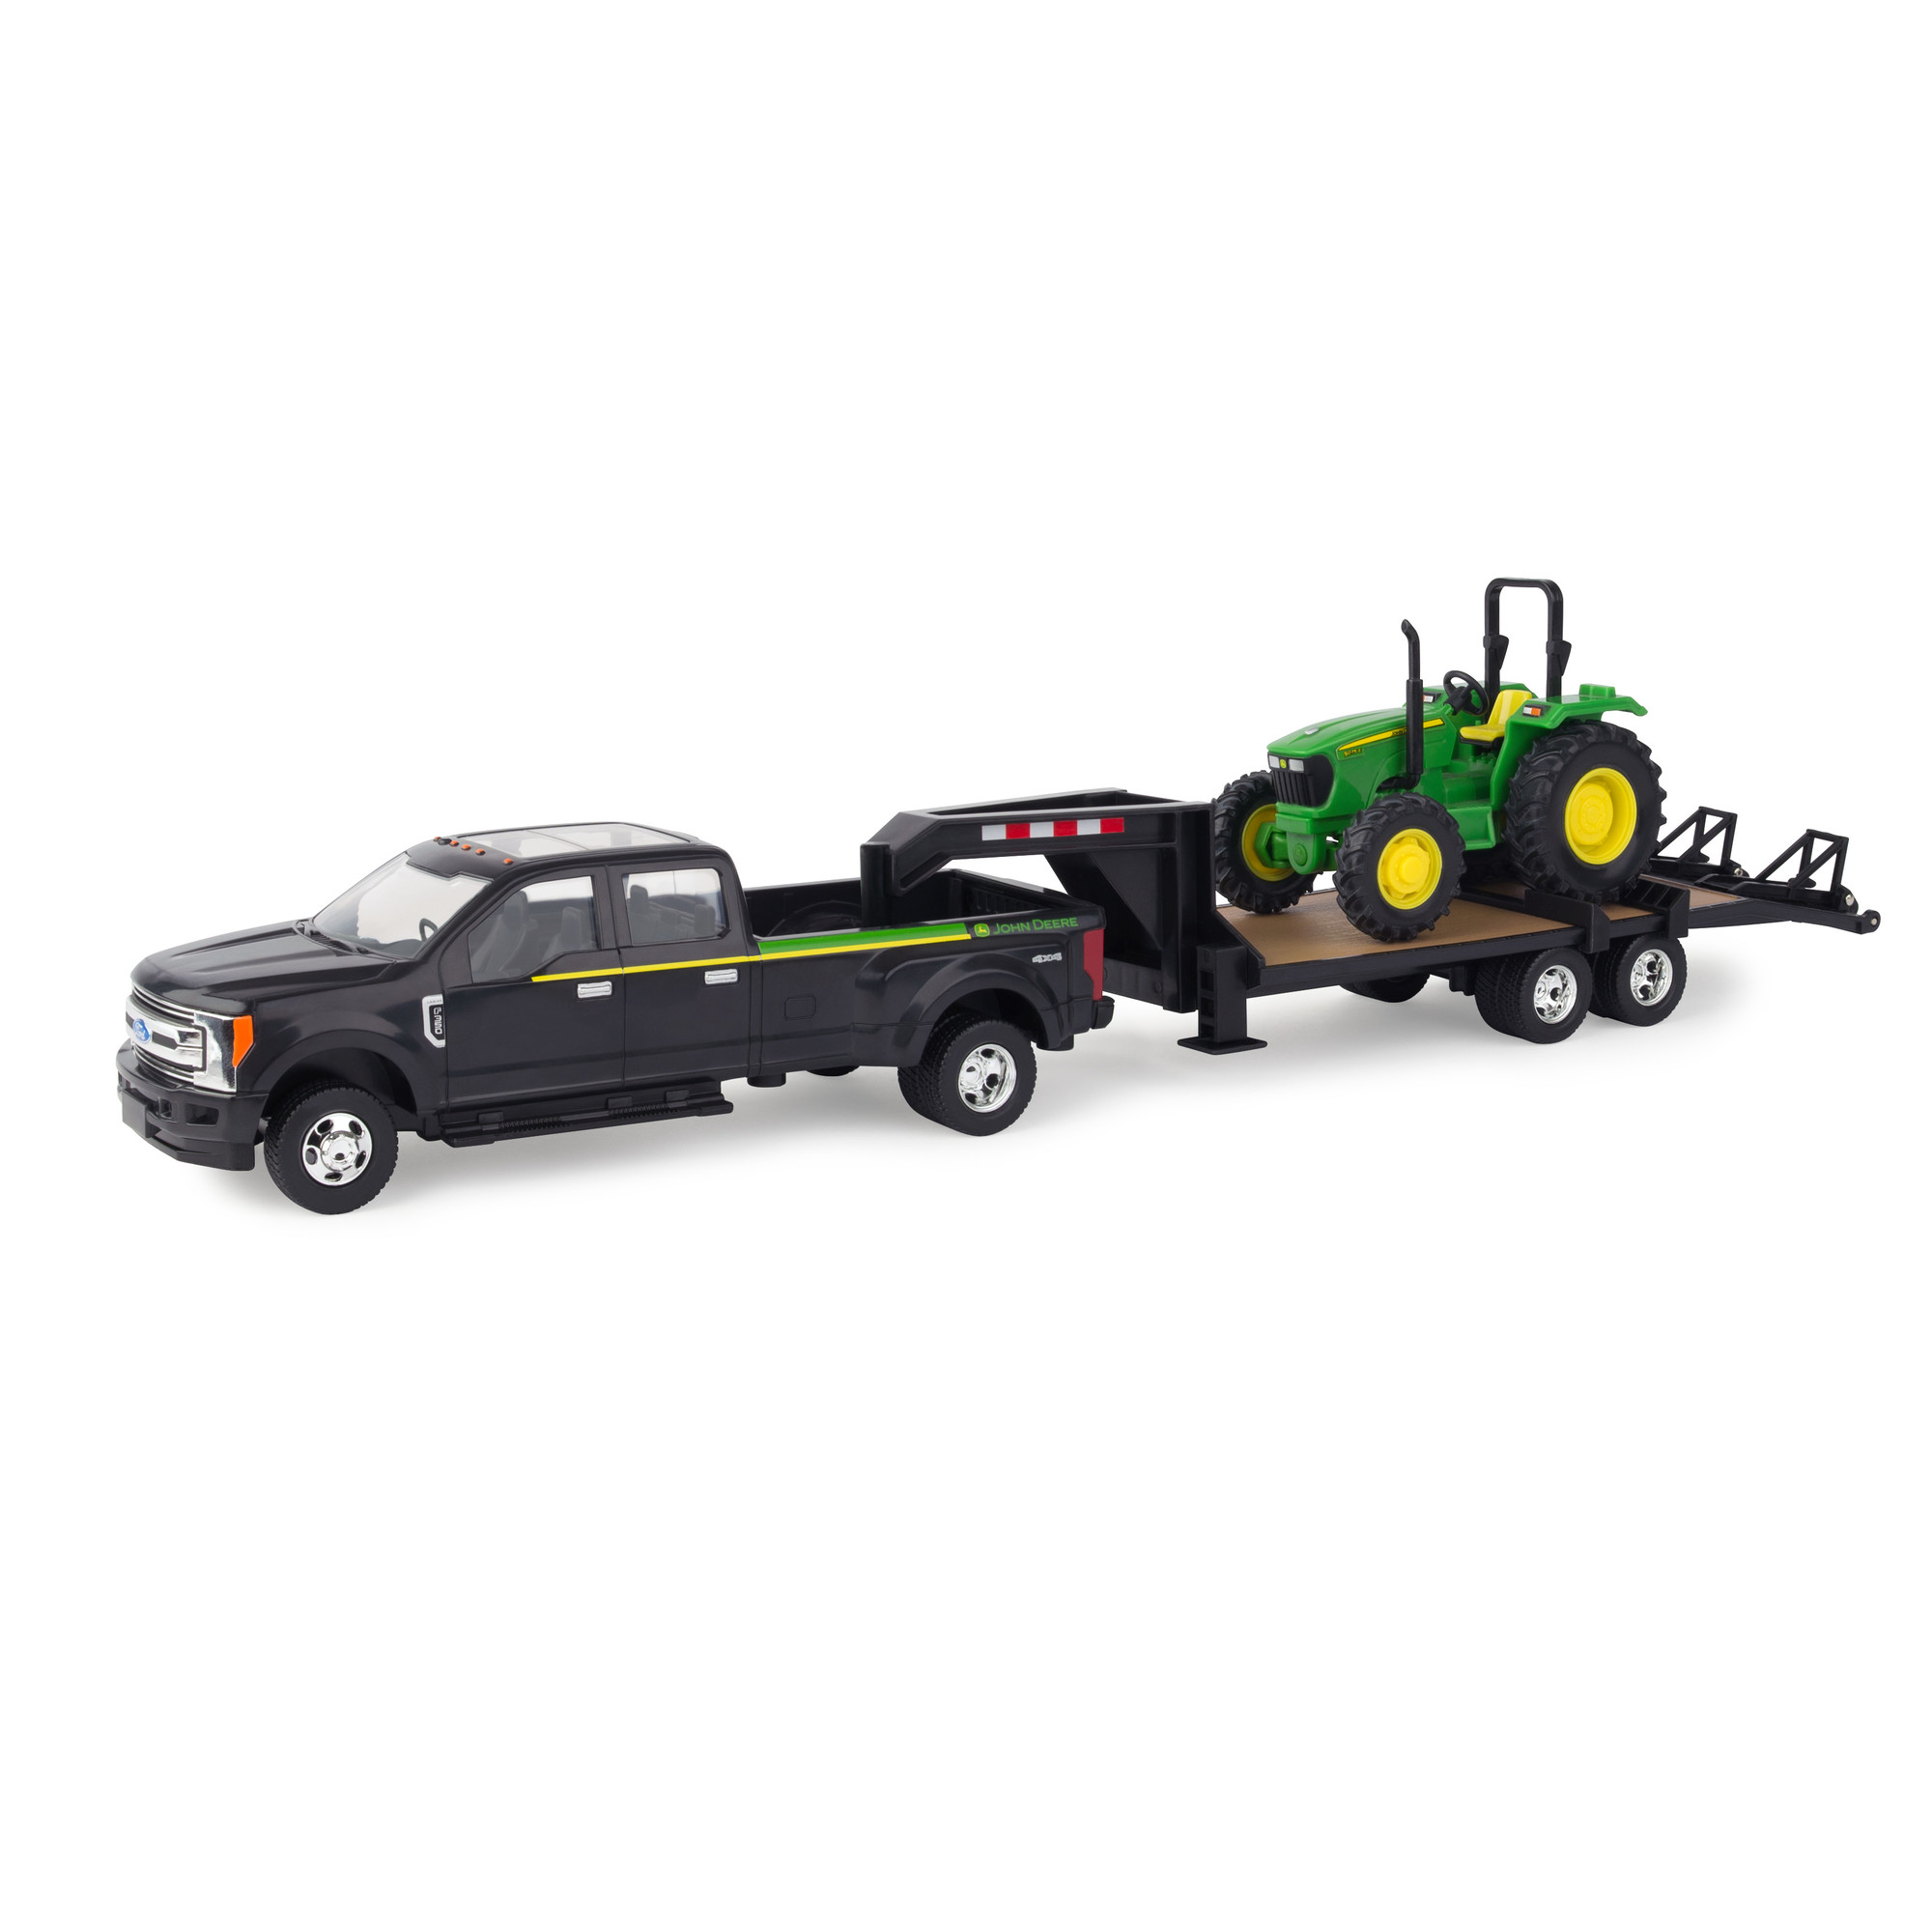 1:32 2017 Ford F350 with Gooseneck and John Deere 1:32 5075E Tractor by Tomy Inc